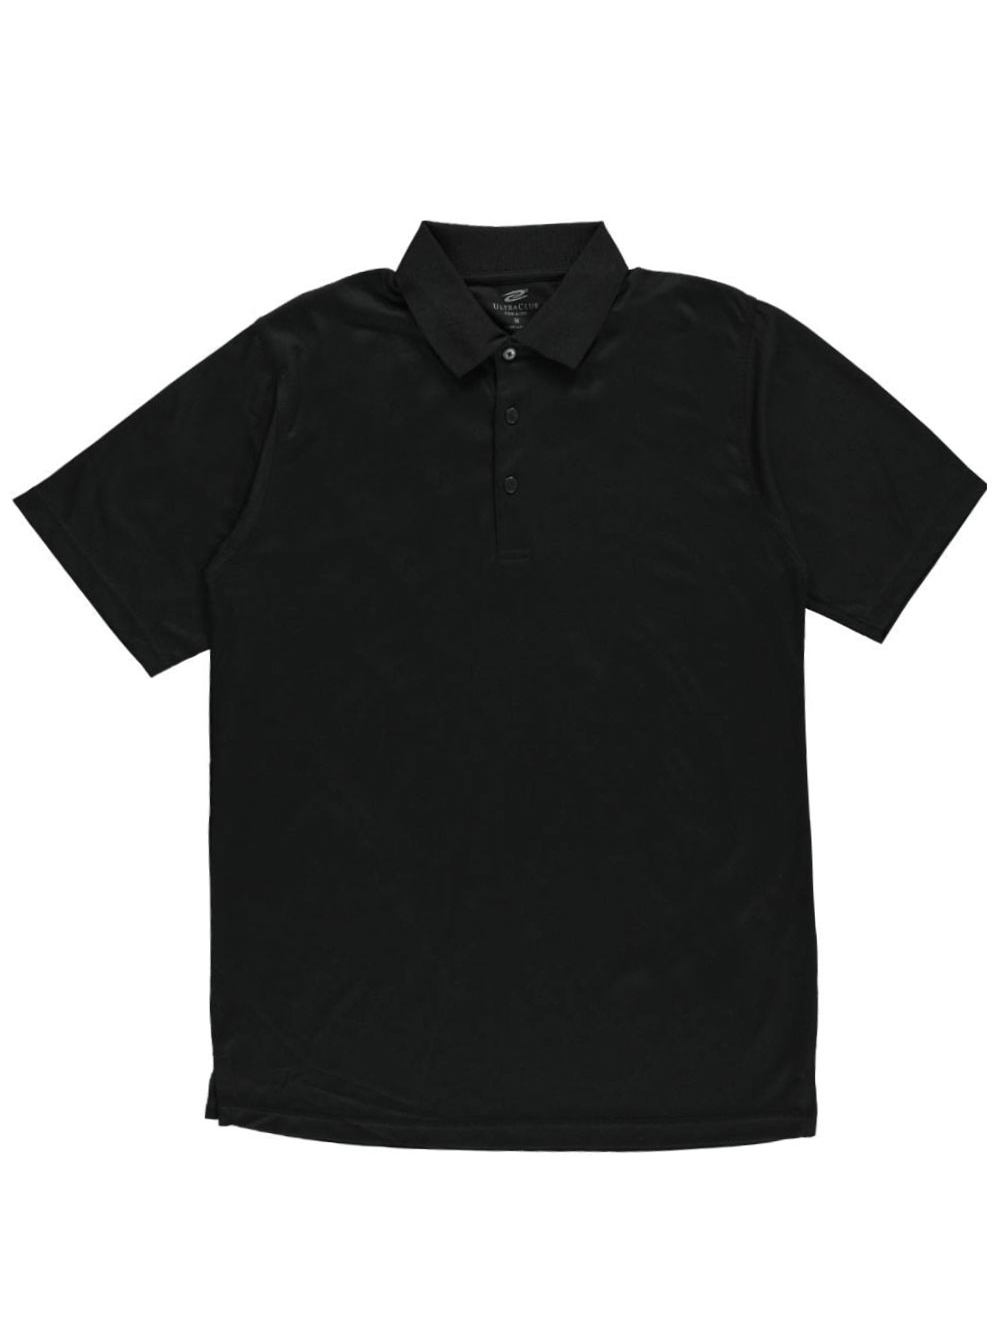 Ultra Club Poly-Pique Polo (Adult Sizes S - XXL)